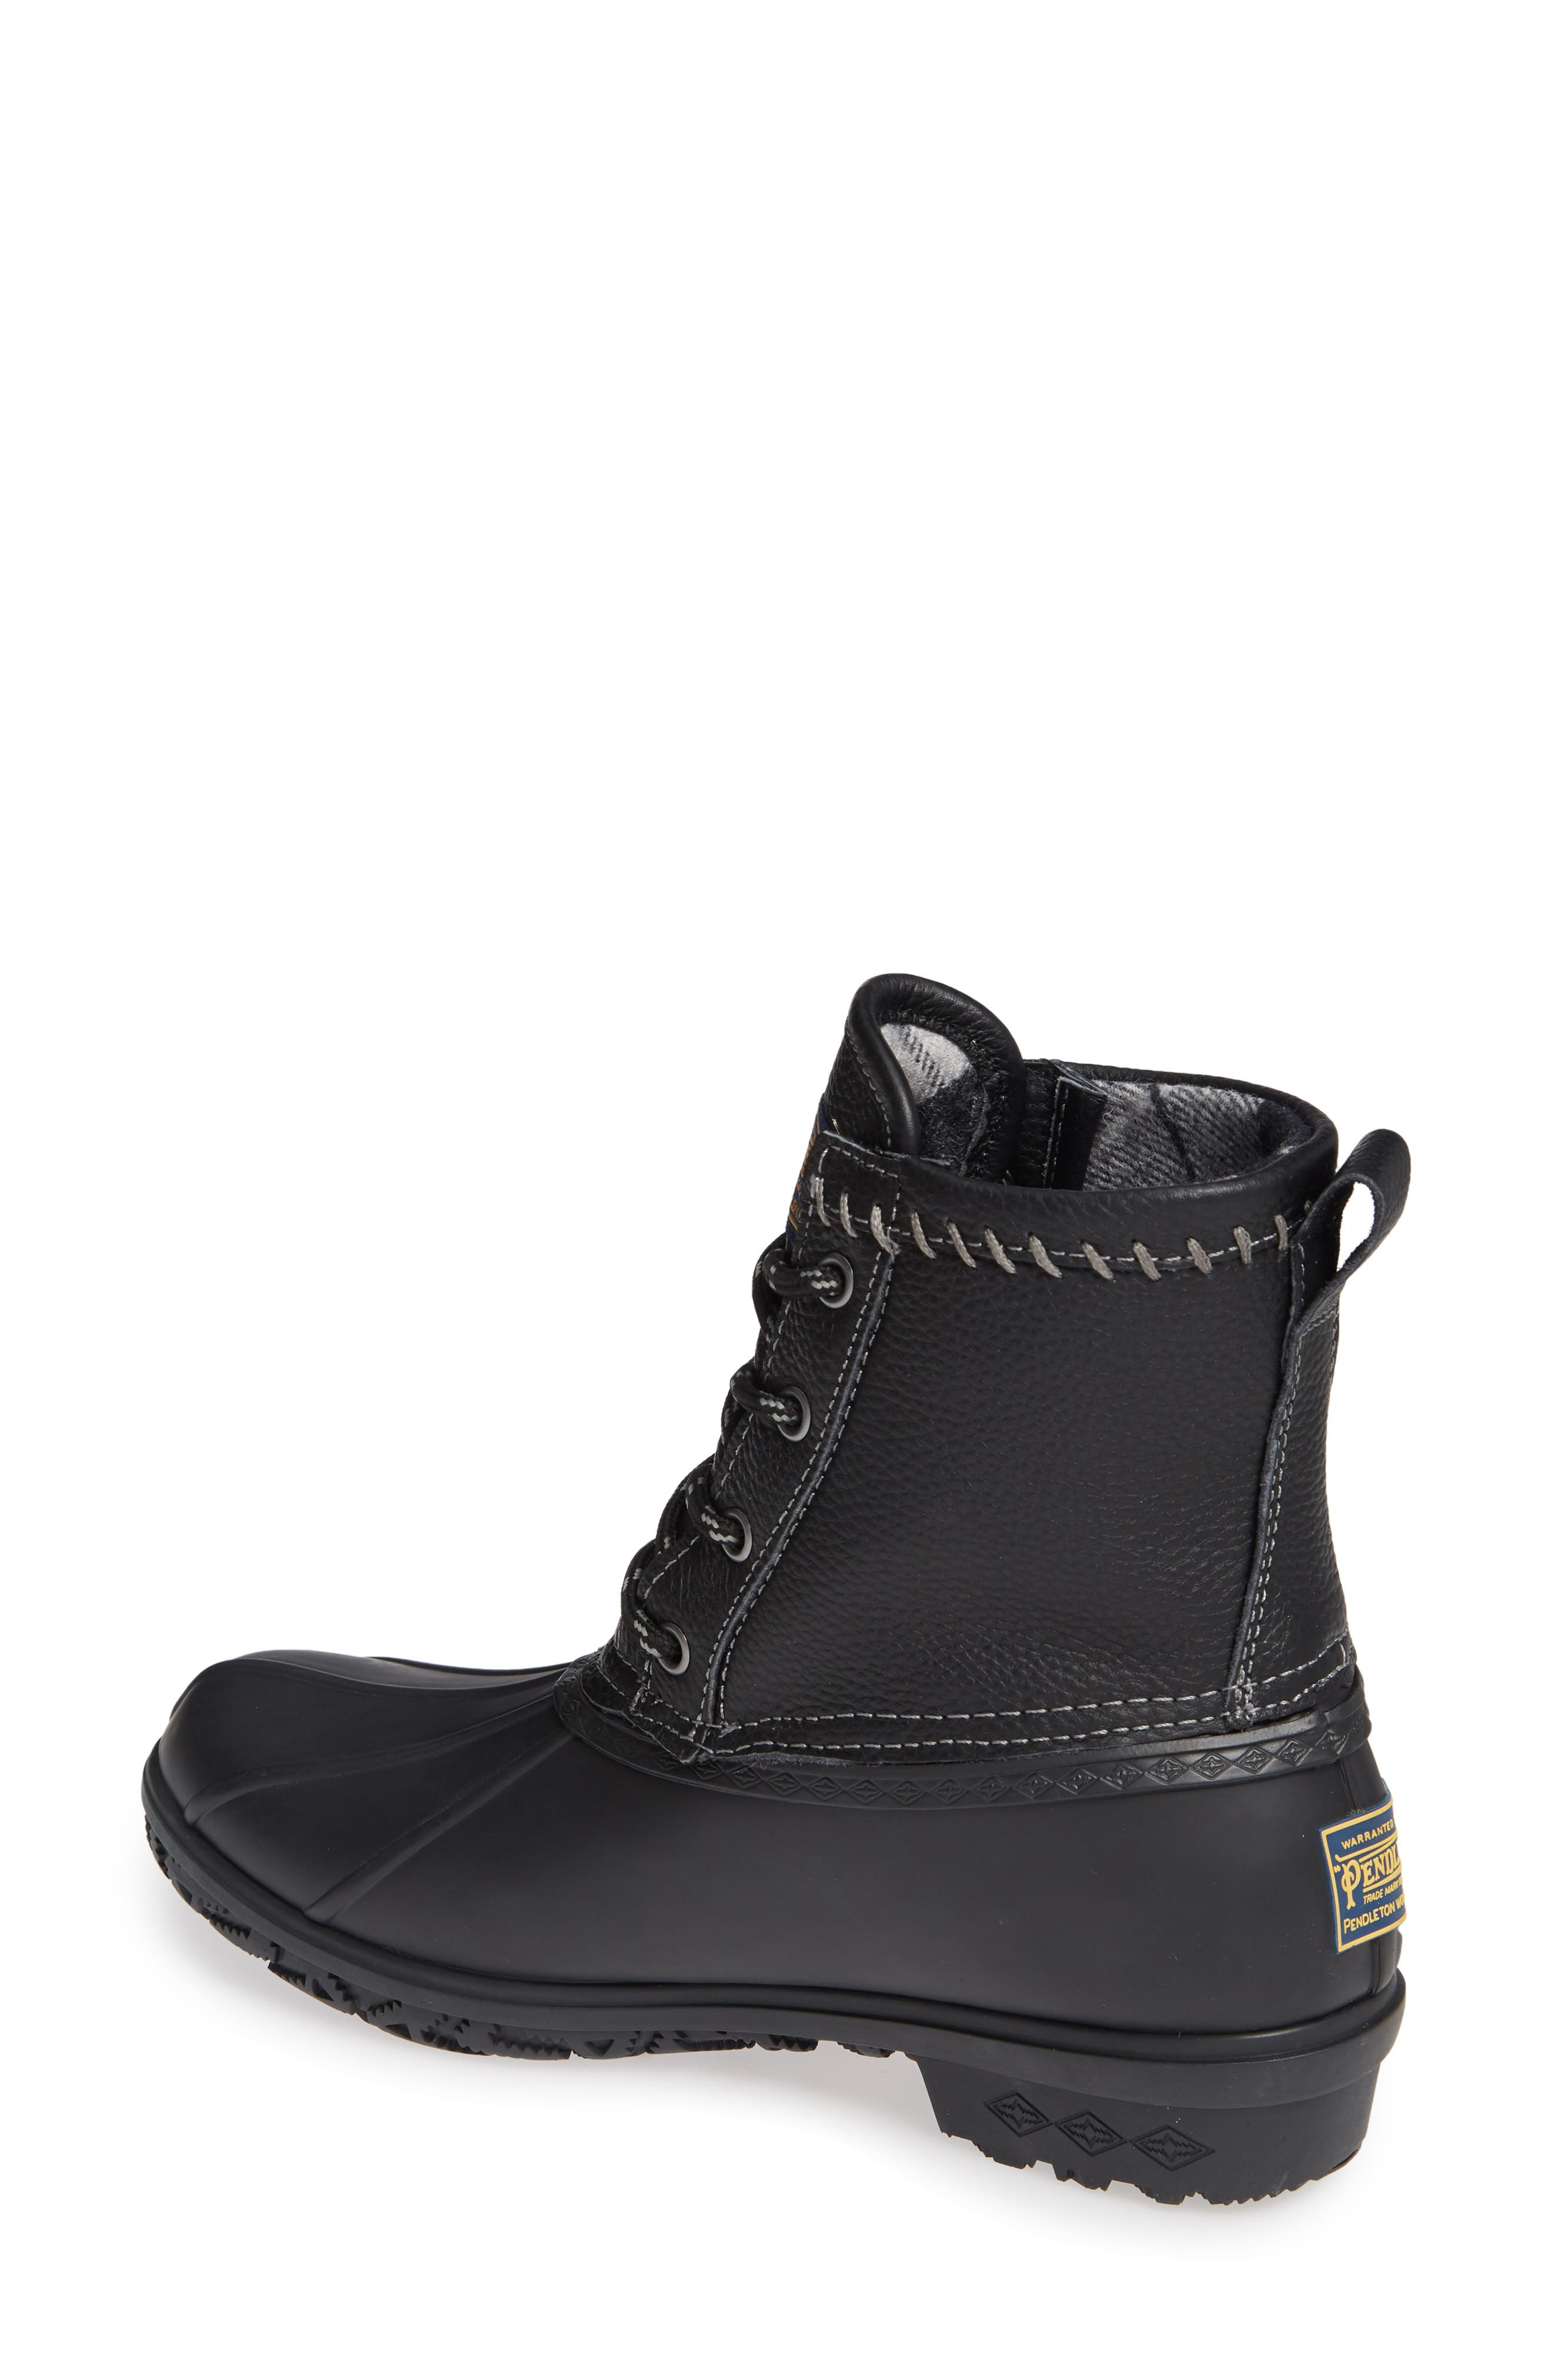 Waterproof Duck Boot,                             Alternate thumbnail 2, color,                             BLACK RUBBER